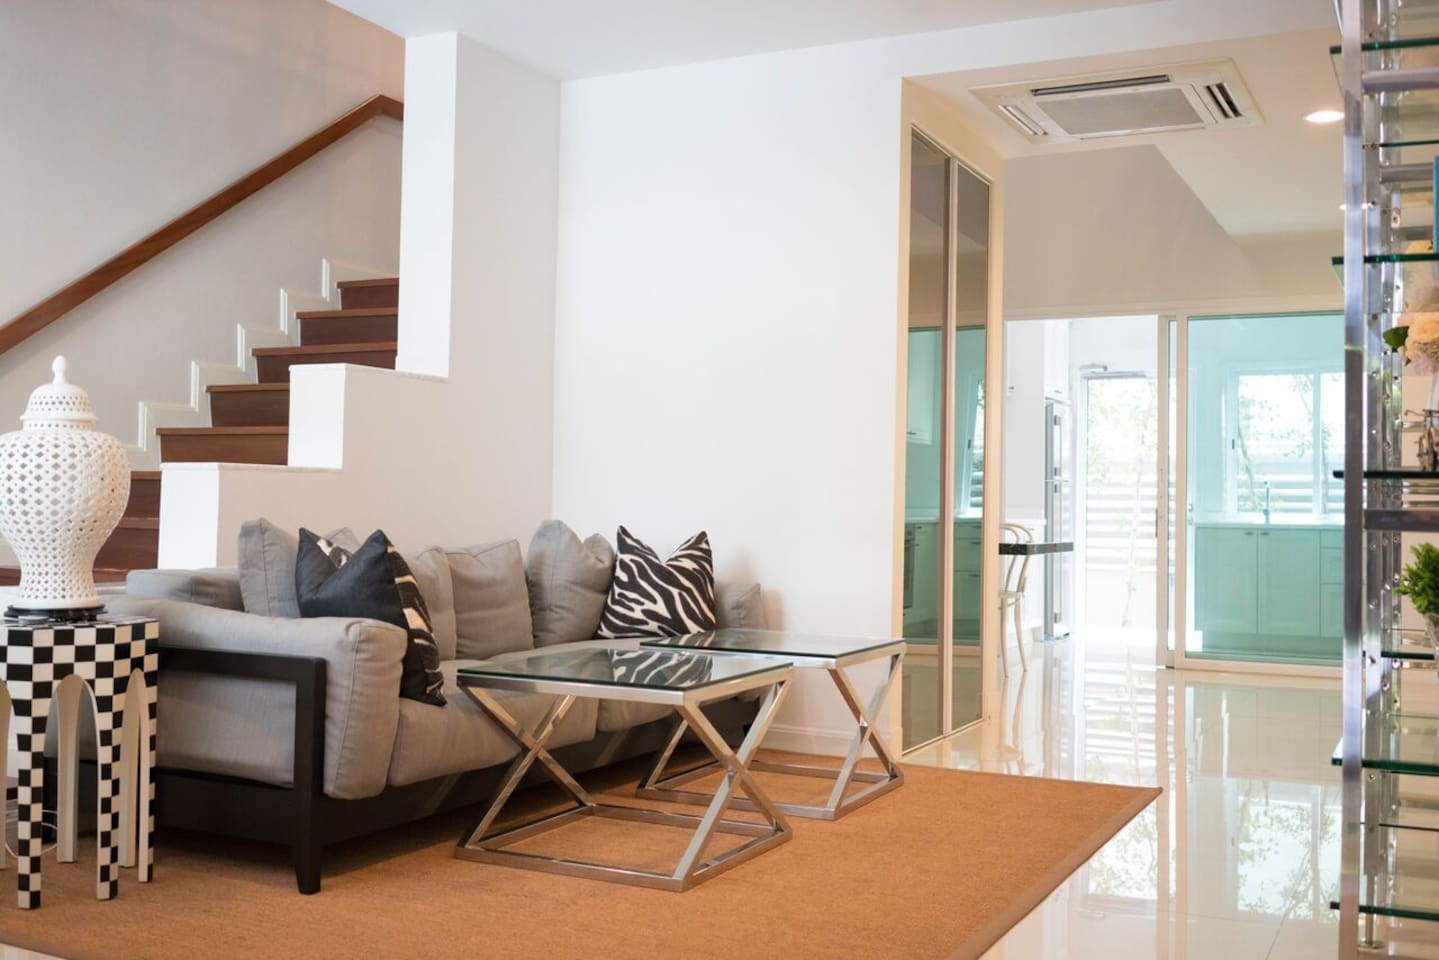 402 Konnari Serviced Townhome, Sukhumvit 16 - Townhouses for Rent in ...